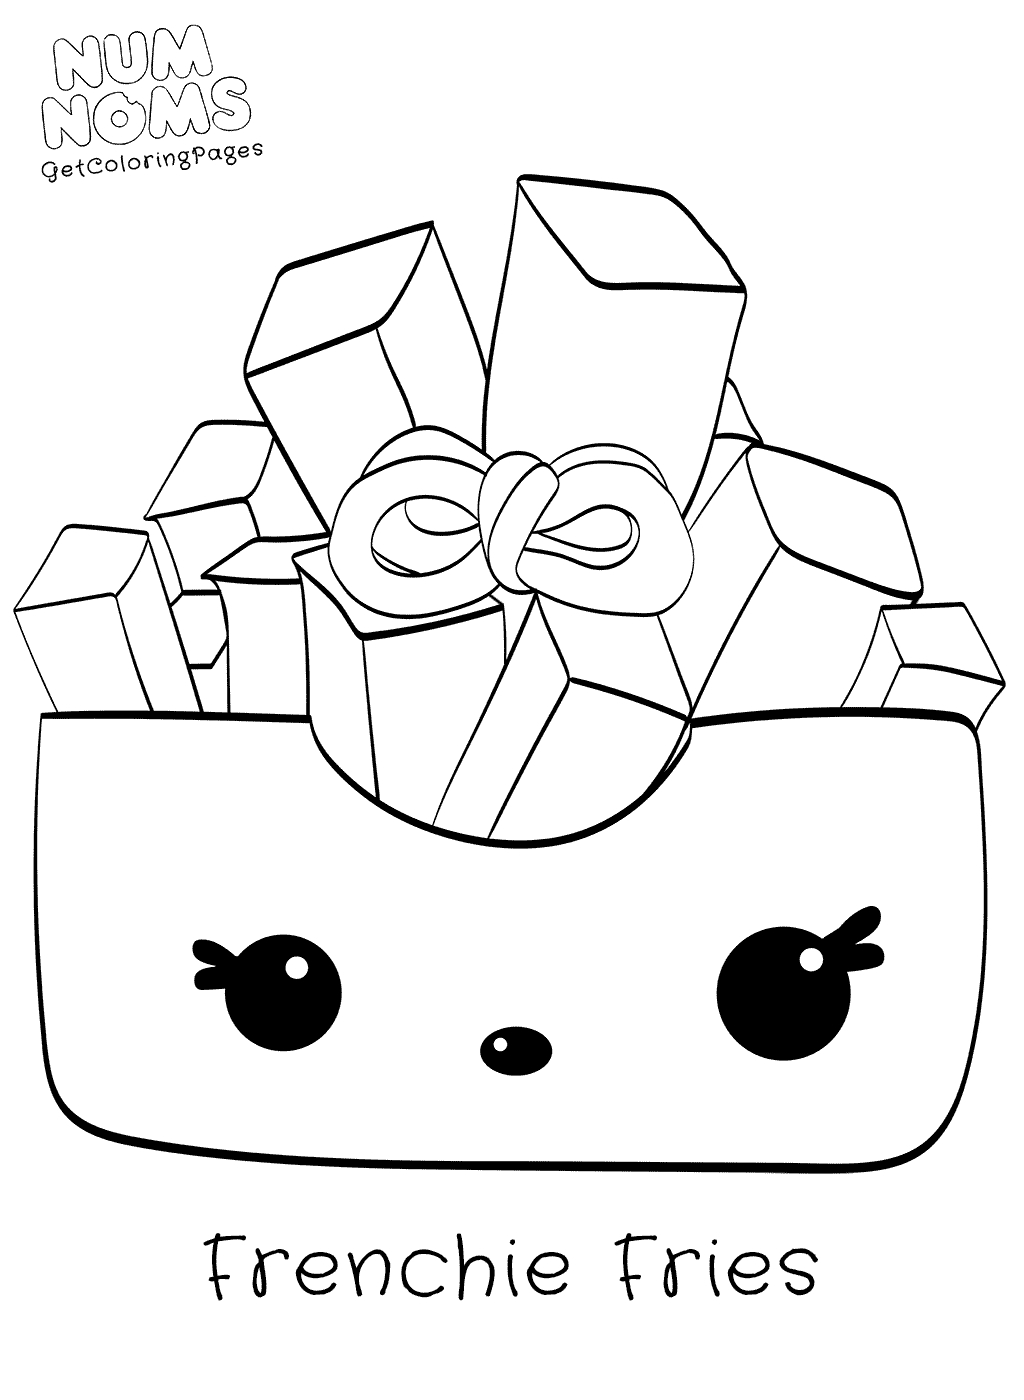 24 Num Noms Coloring Pages Selection Page 3 of 3 FREE COLORING PAGES